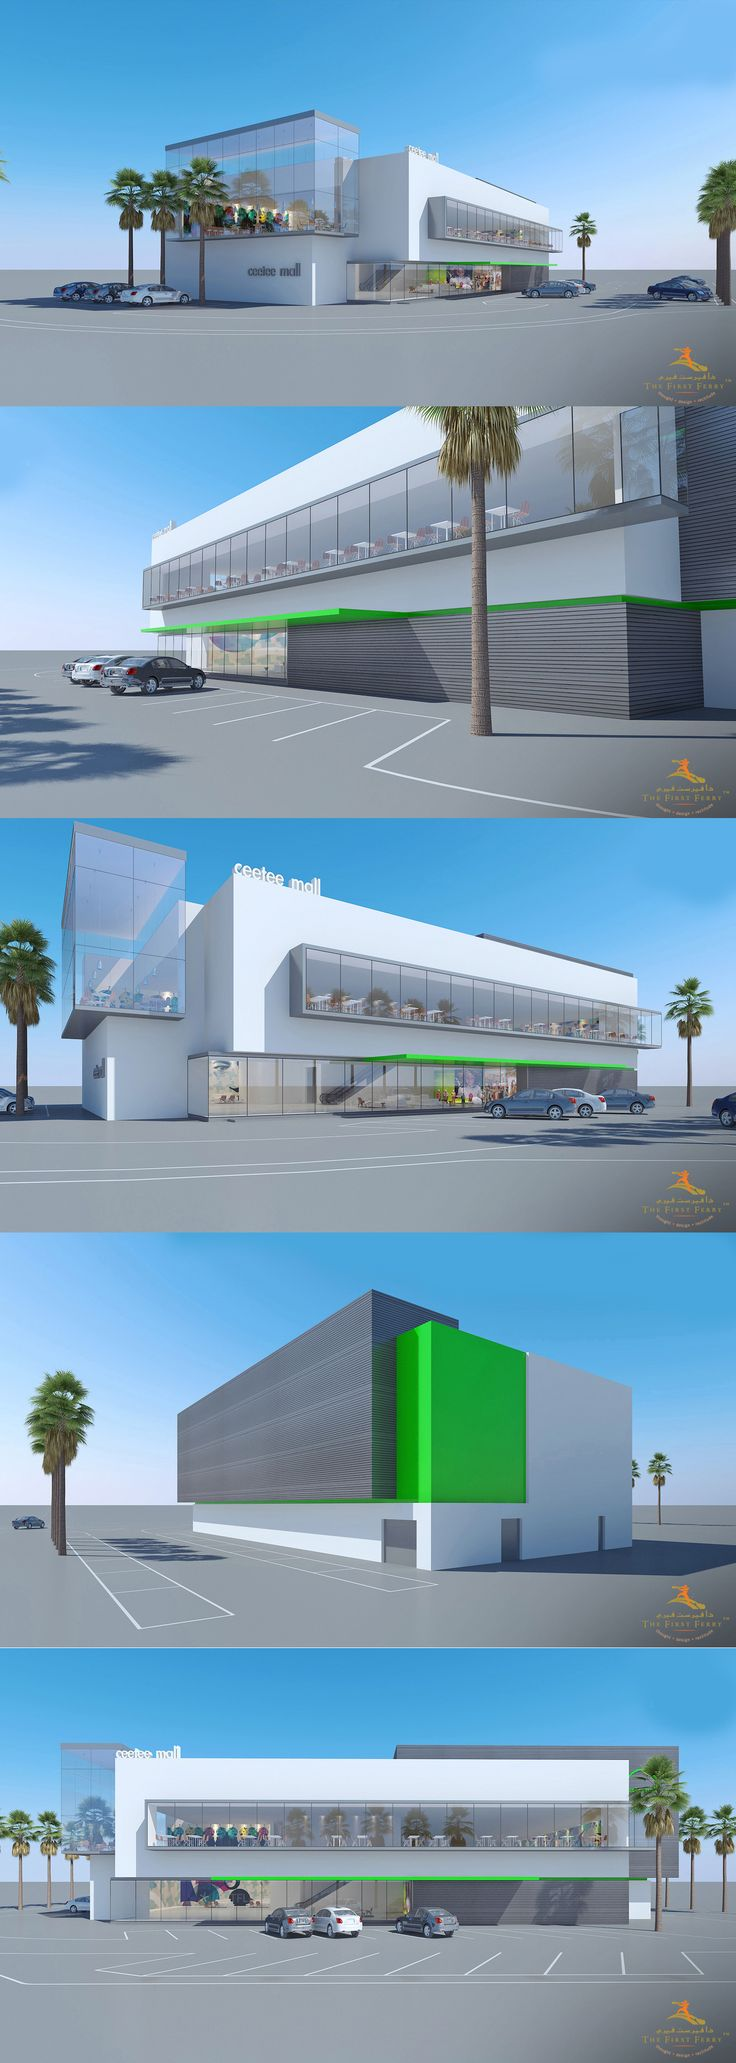 Here is an elegantly designed mall concept by #TheFirstFerry. This contemporary and progressive art is the representation of the future of architecture design and styling envisioned by the team.  http://www.thefirstferry.com  #Architecture #Art #MallConcept